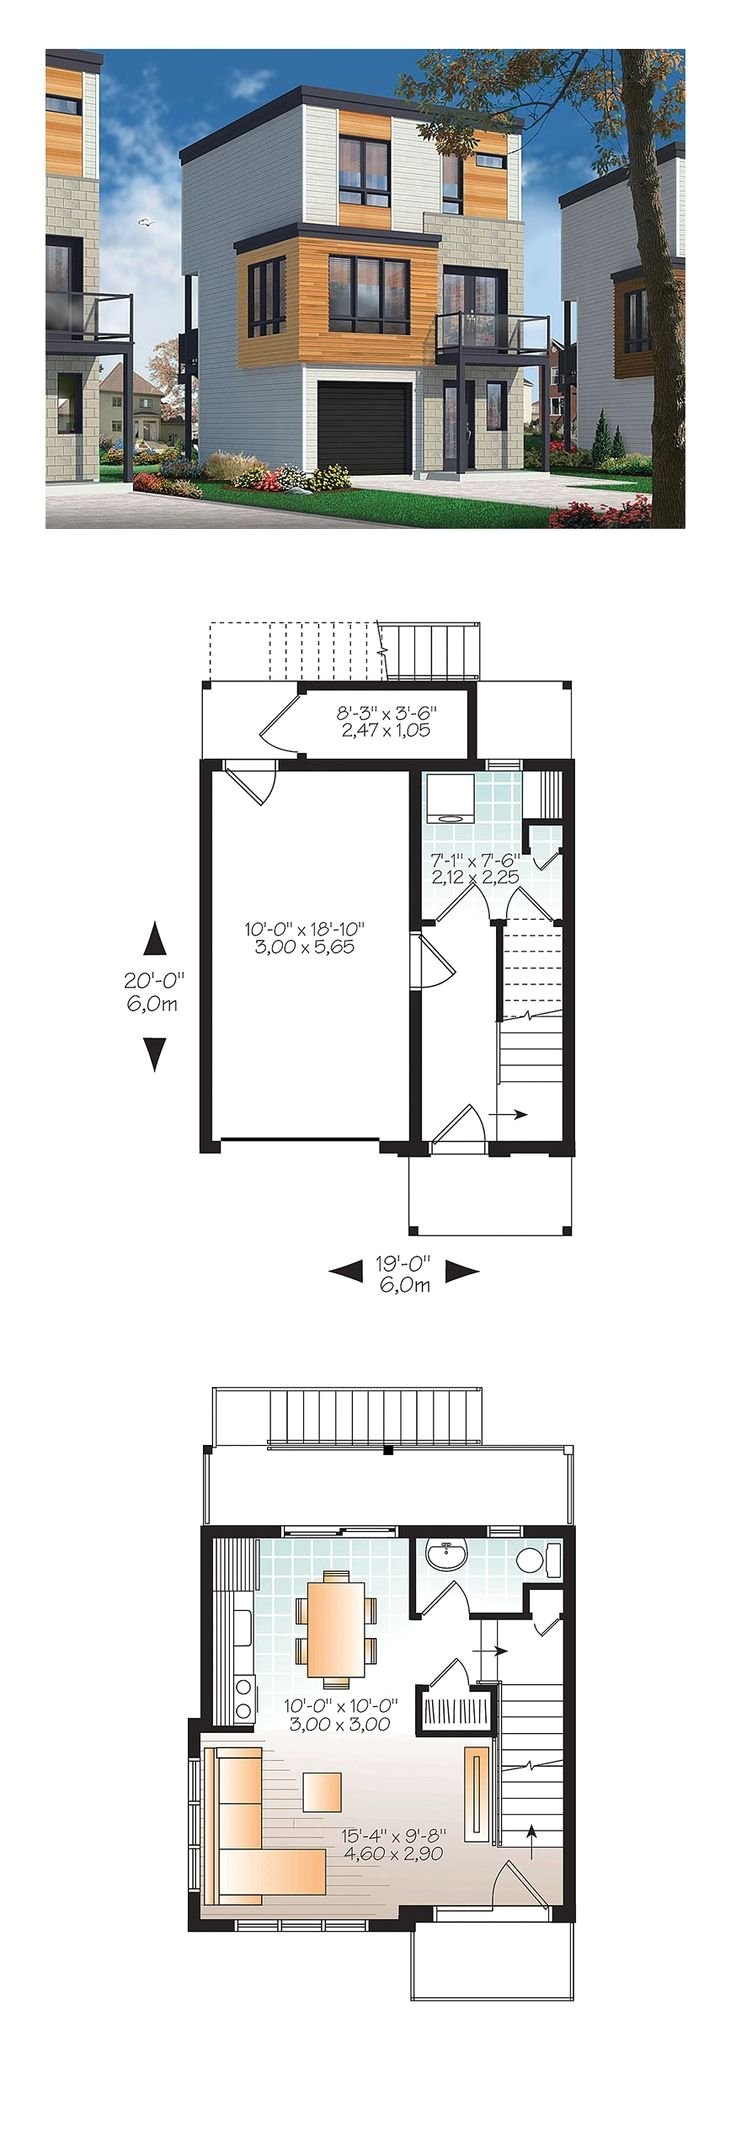 3 bedroom house plans under 1000 sq ft